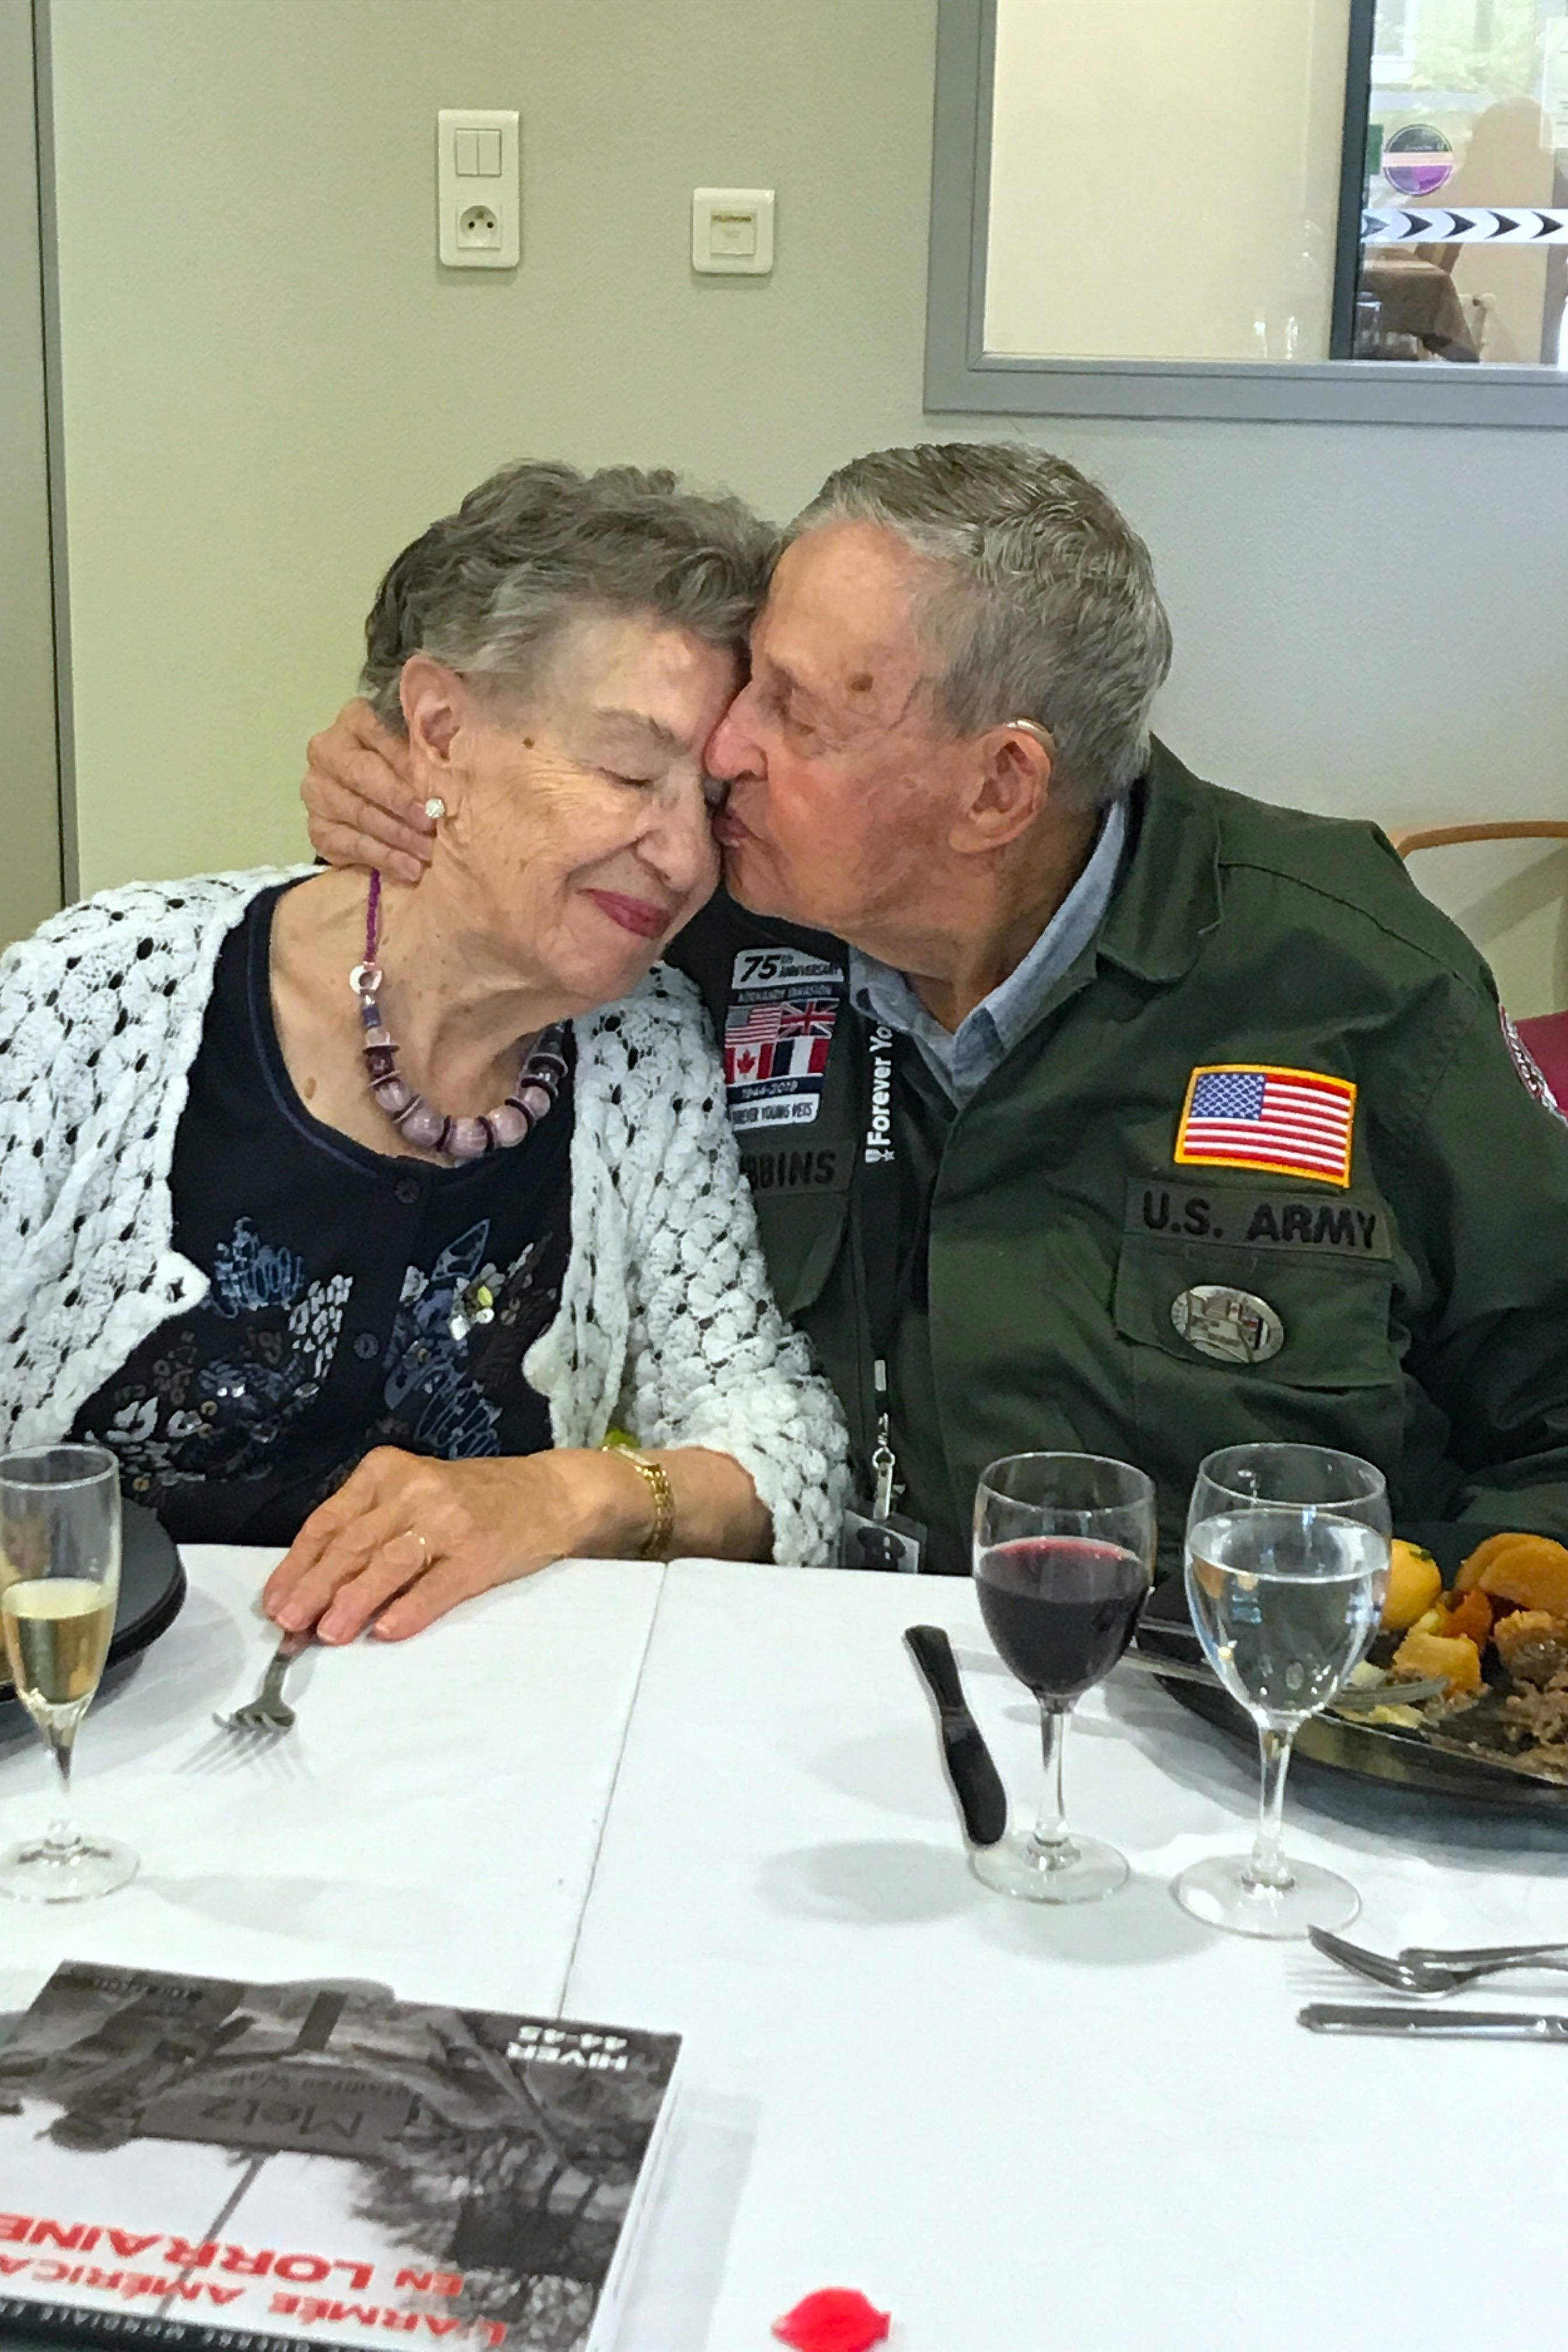 WATCH: Tennessee Nonprofit Helps WWII Veteran Reunite with Long-Lost Love After 75 Years